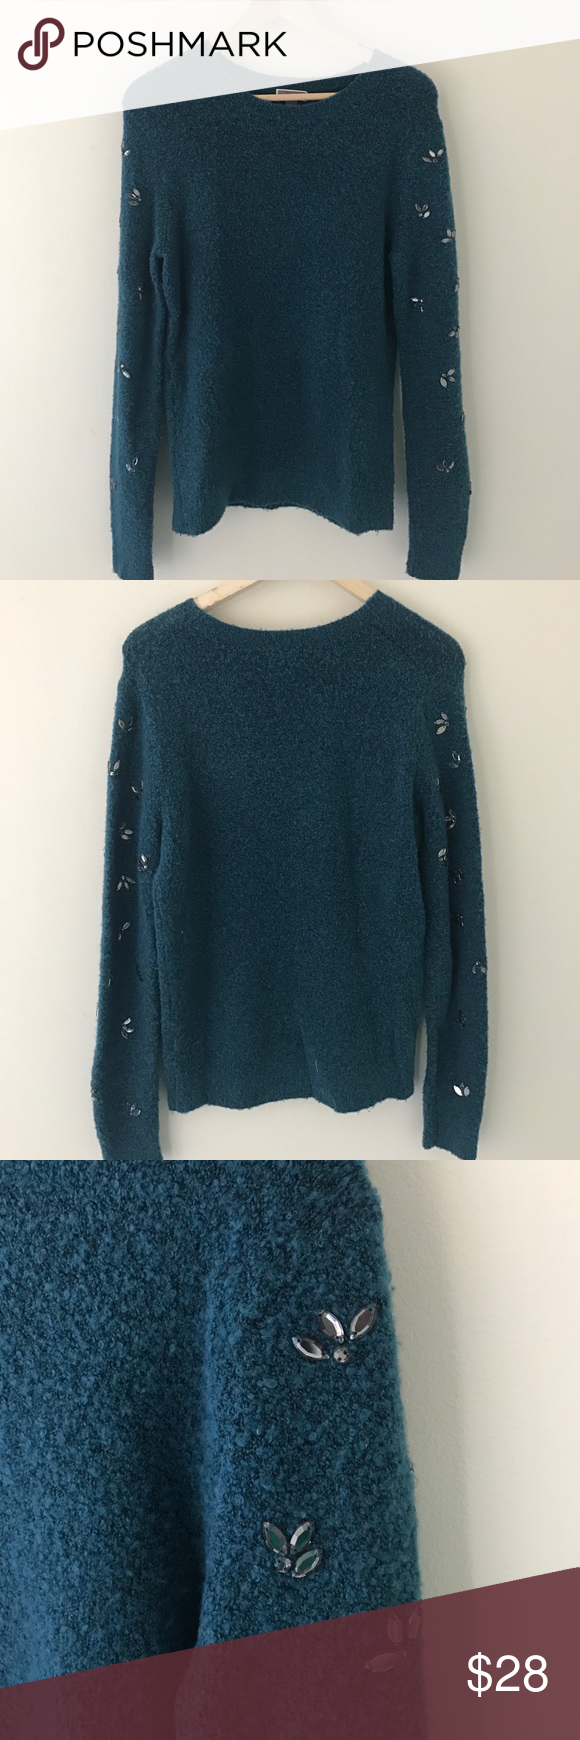 Chelsea 28 embellished sweater from Nordstrom This beautiful sweater is in great condition! Nordstrom Sweaters